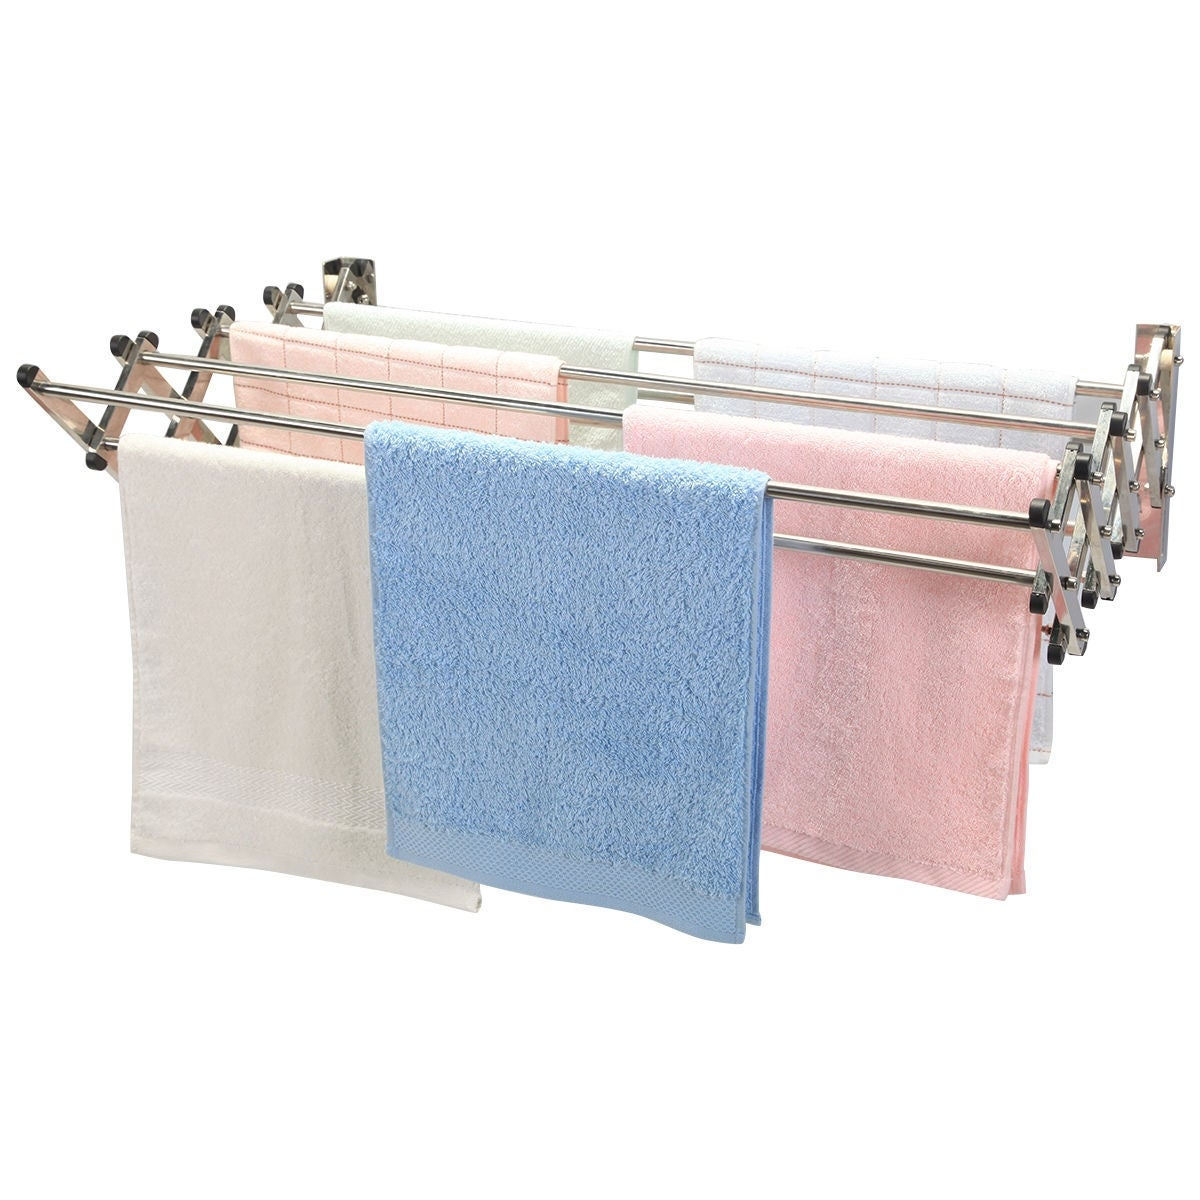 Shop Costway Stainless Wall Mounted Expandable Clothes Drying Towel ...